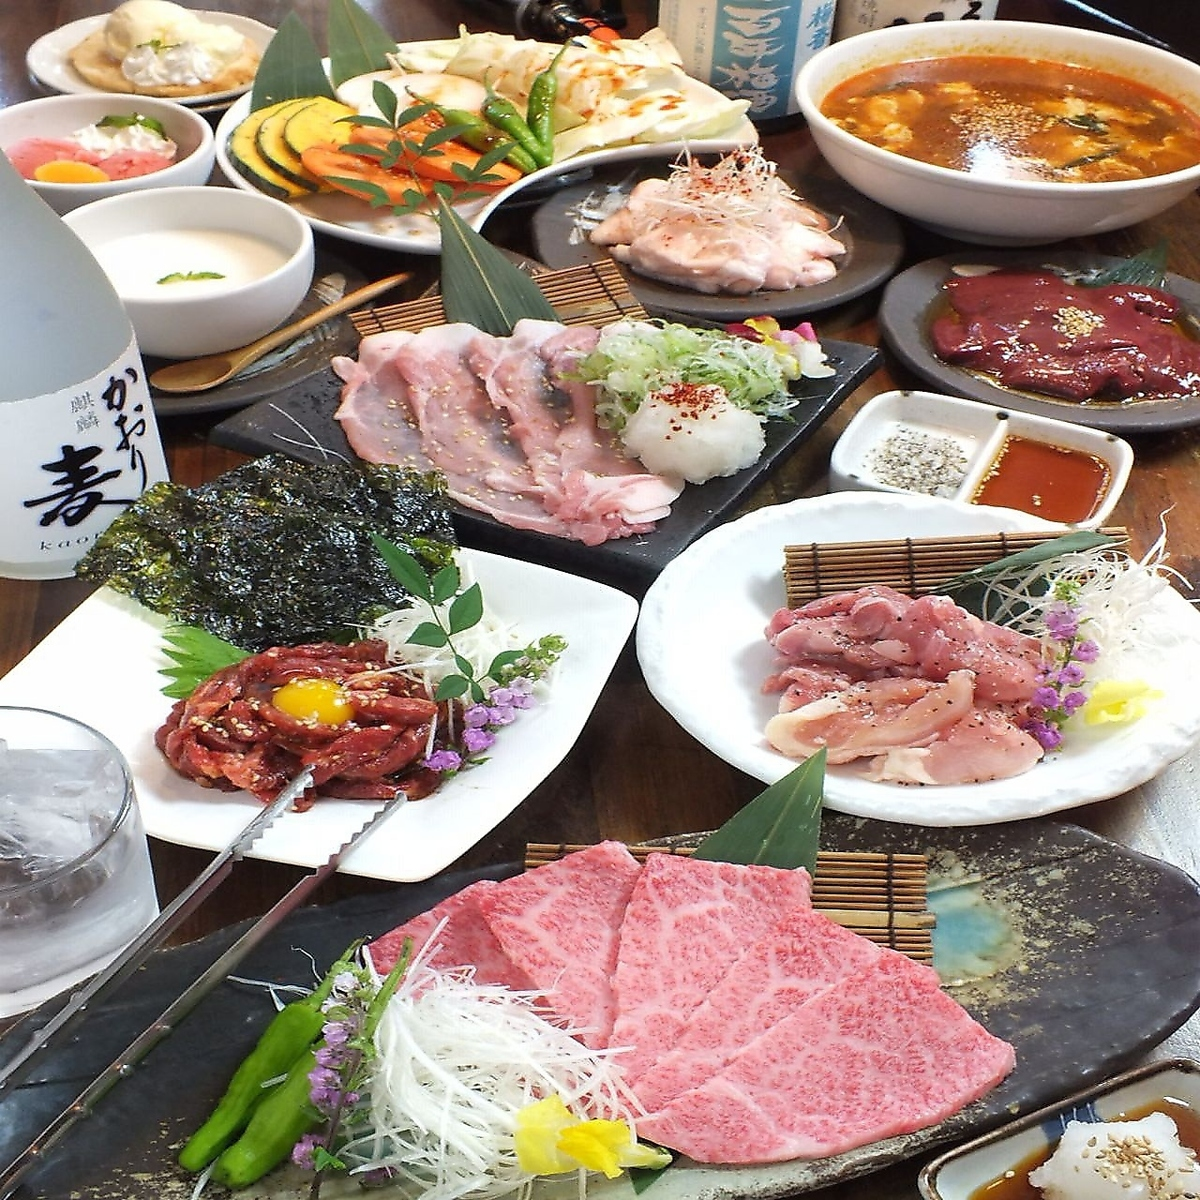 Manager jewel ★ with Rice all-you-can-eat [choose! Popularity MENU enjoy] all you can drink 100 minutes in the course 5000 yen yen +1000 OK